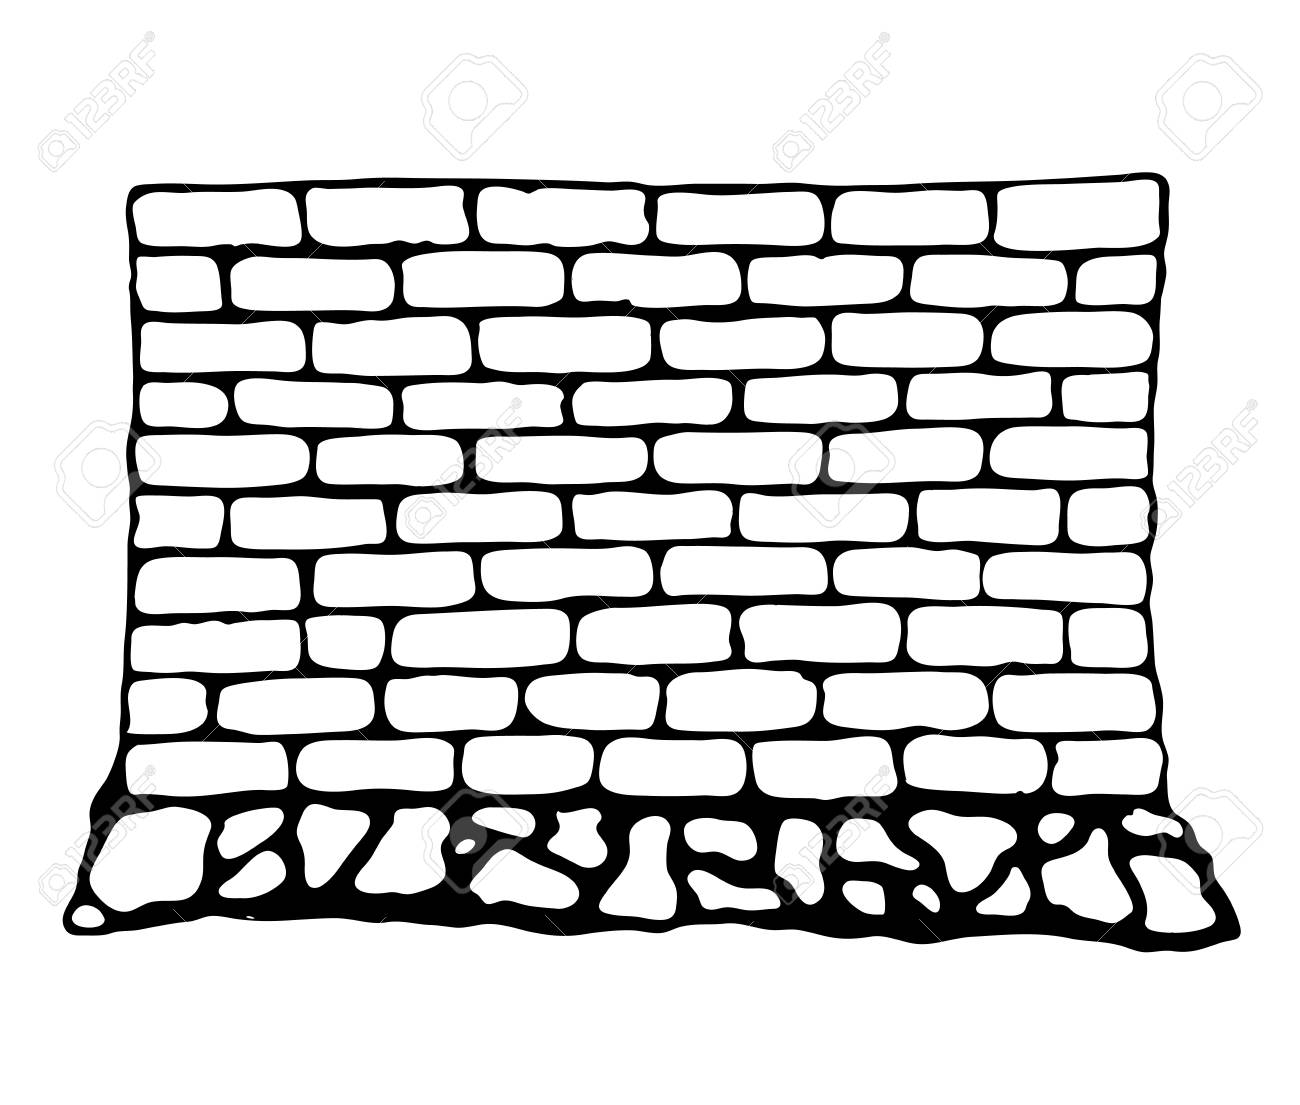 Painted Wall Of Brick And Stone Vector Illustration In Style Rh 123rf Com